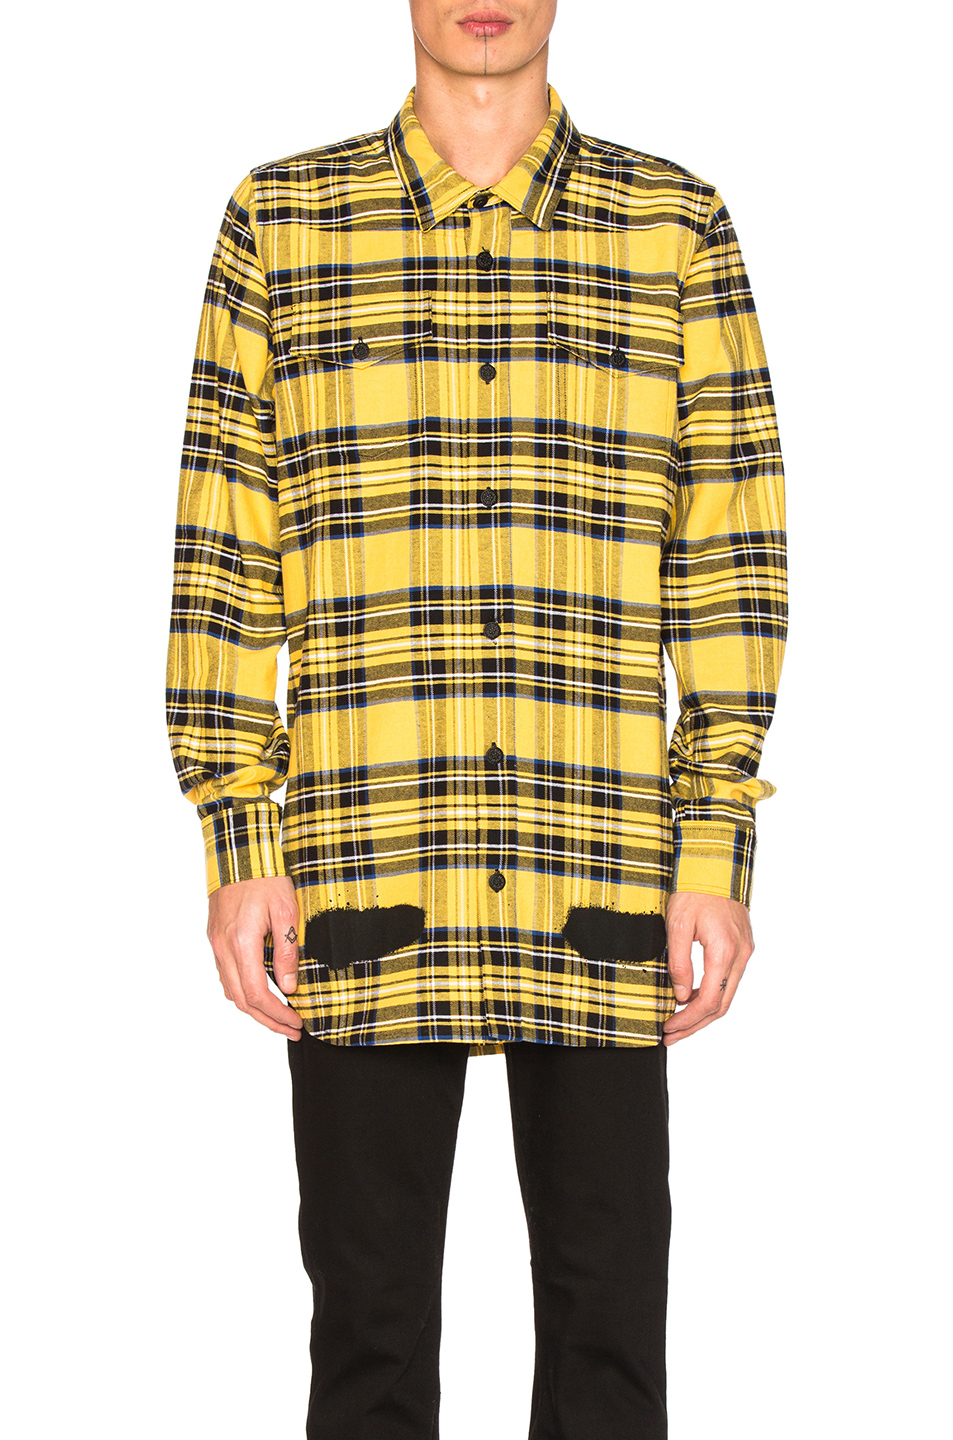 OFF-WHITE Diagonal Spray Check Shirt in Yellow,Checkered & Plaid